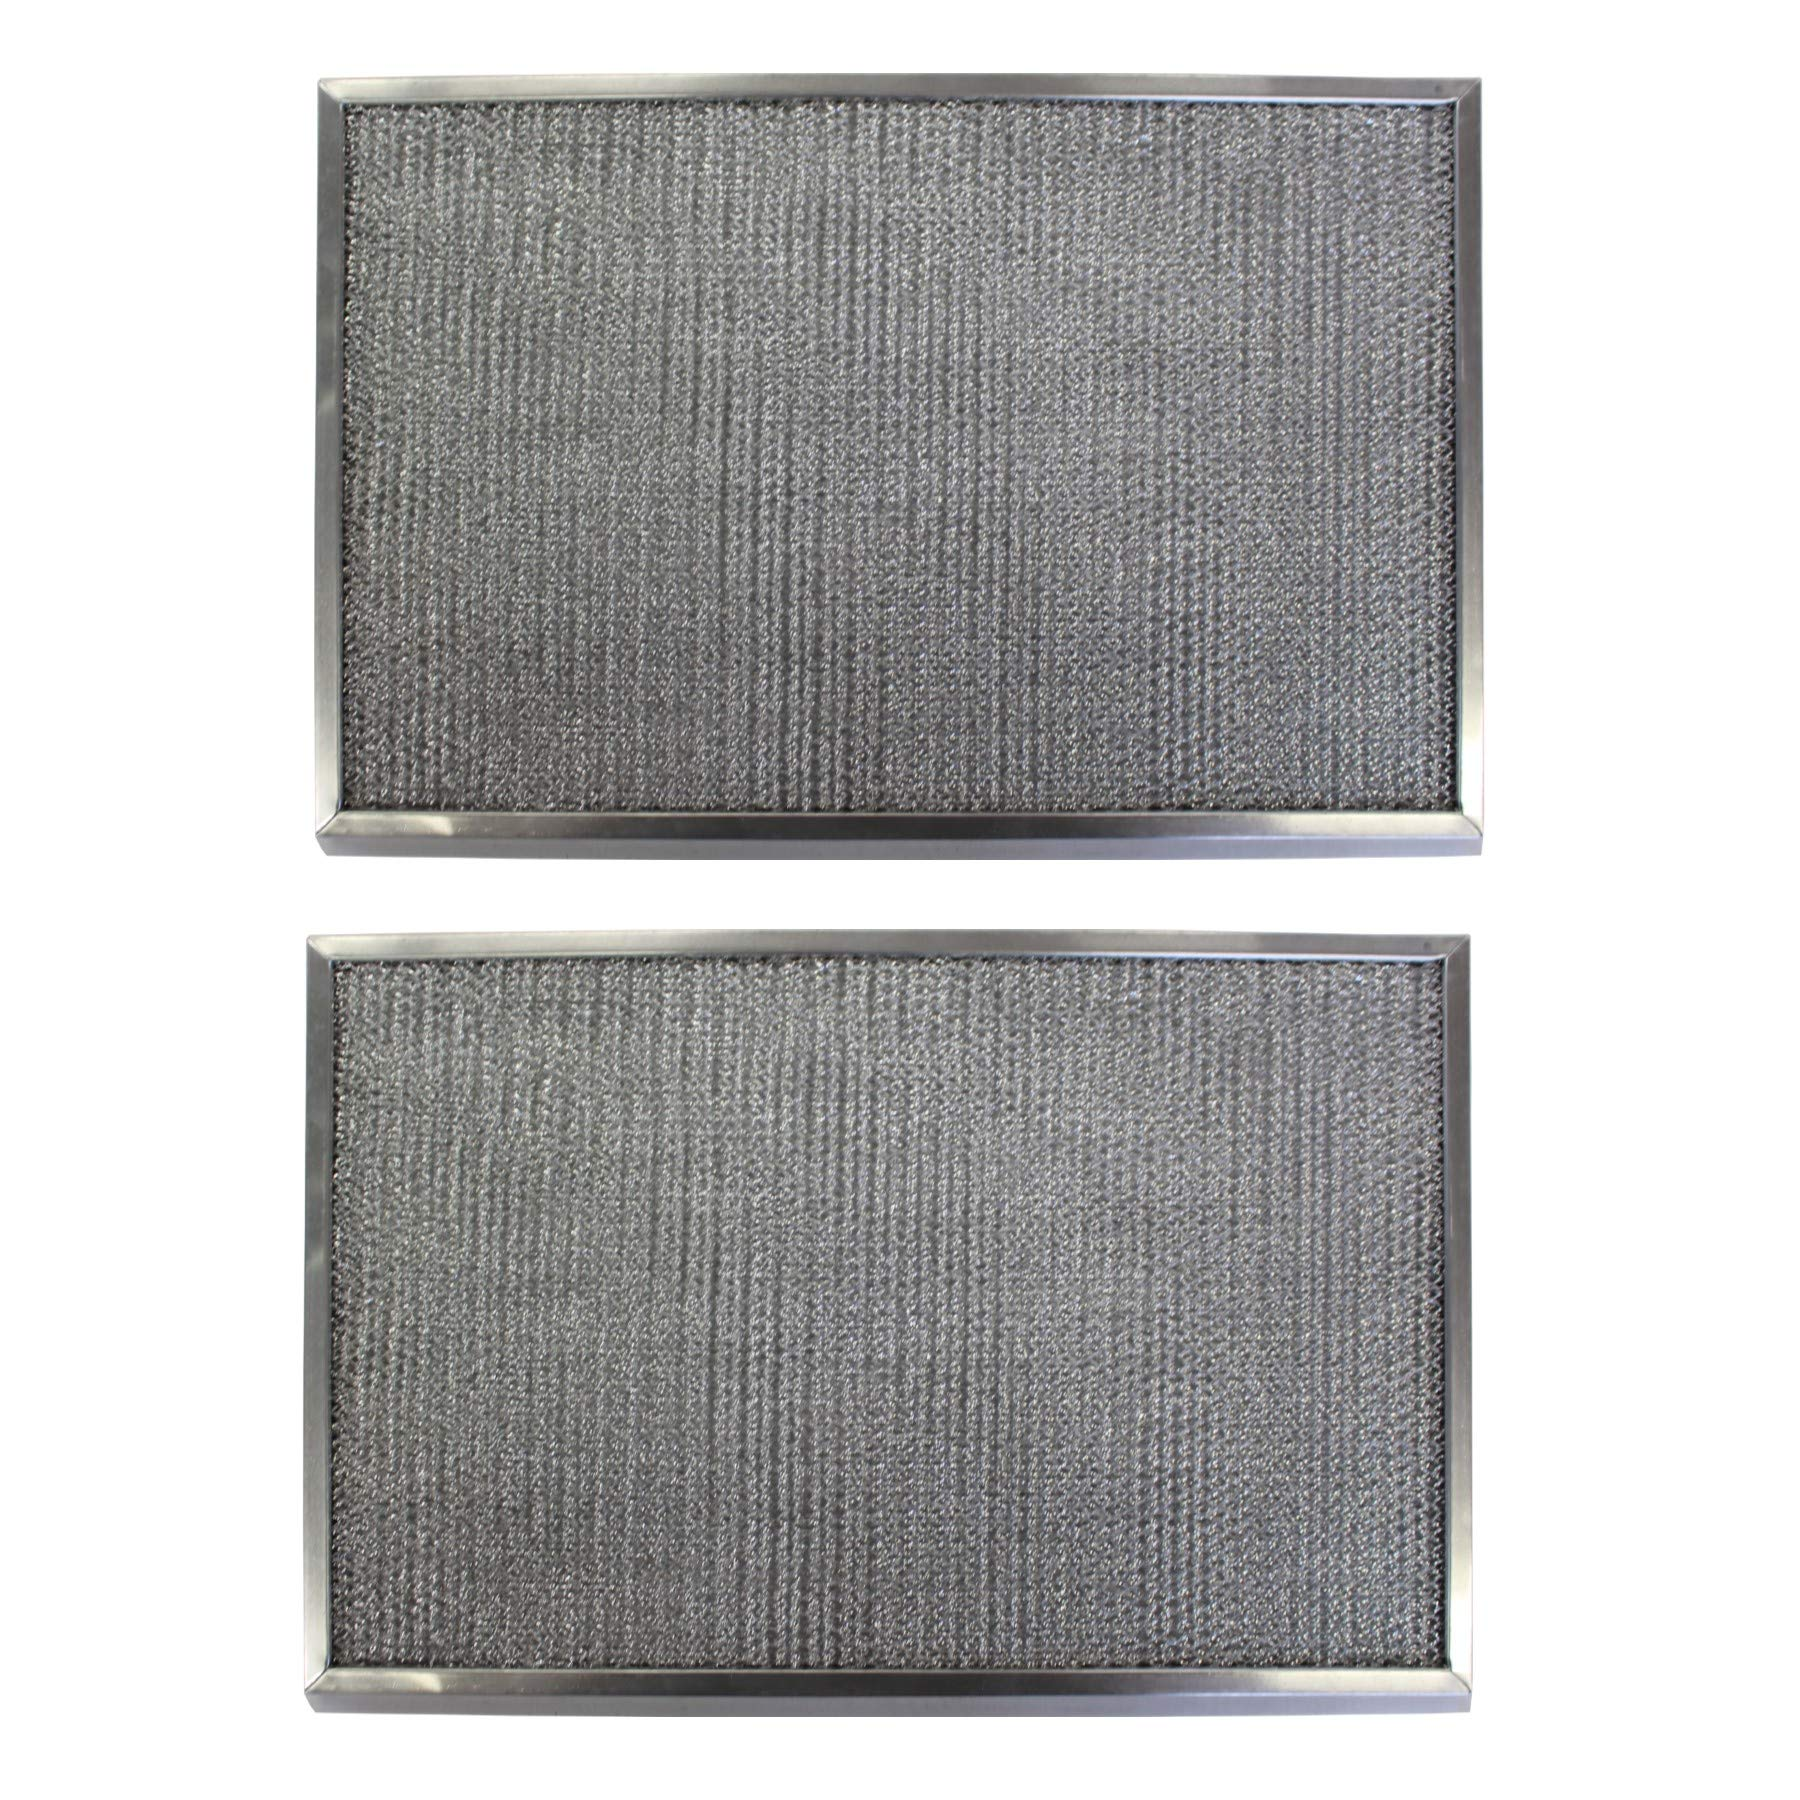 Replacement Aluminum Filters Compatible with Amana 830192,G 8611,RHF0841  8 15/16 x 18 15/16 x 3/8 (